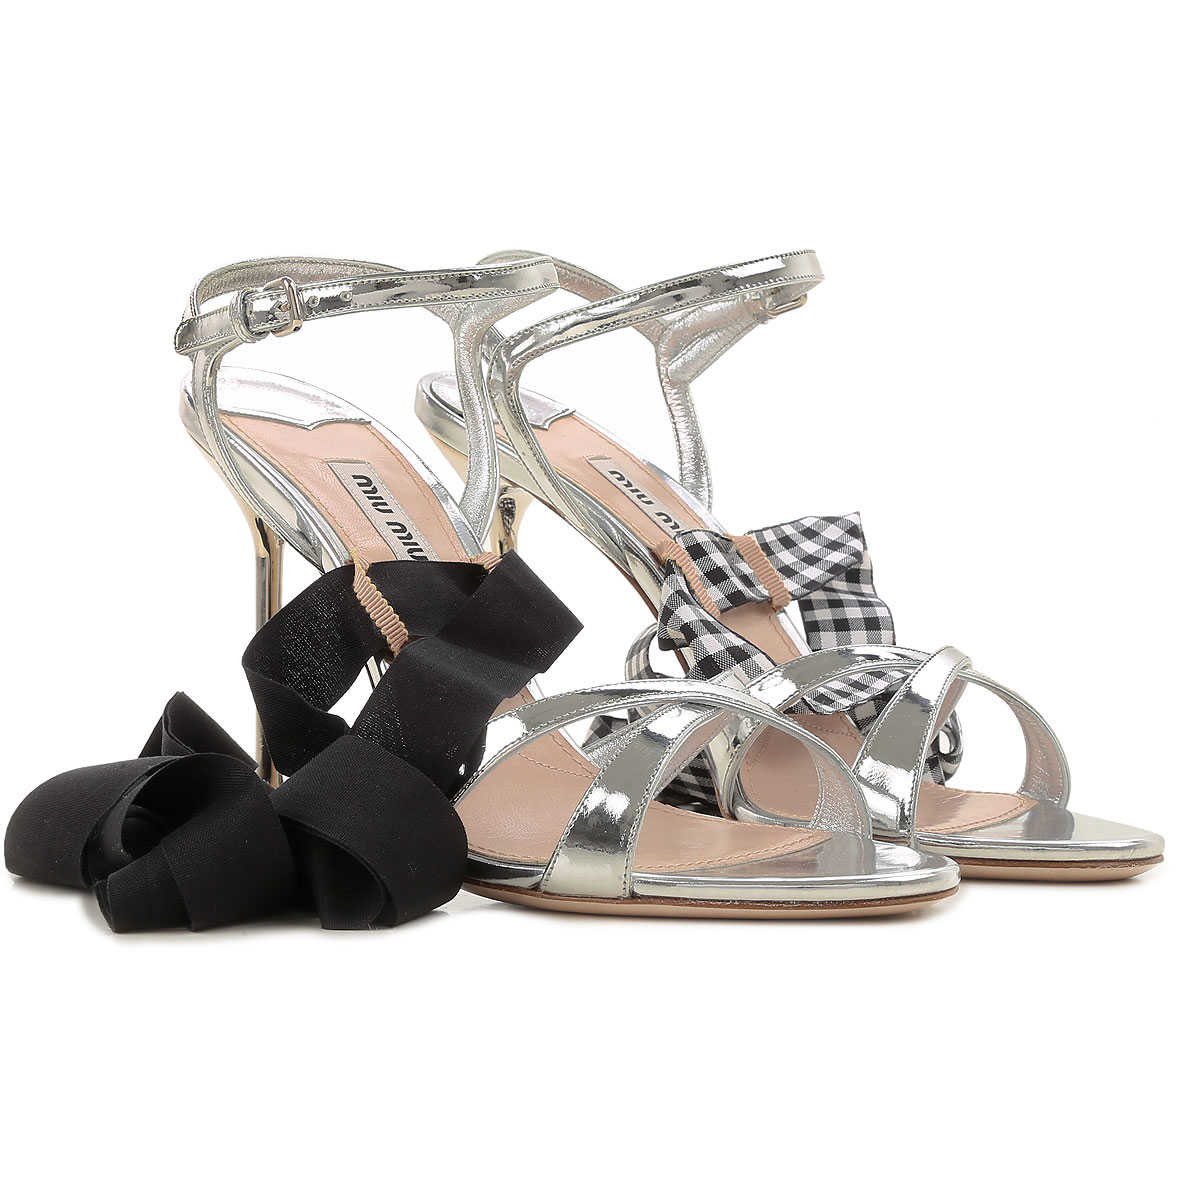 Miu Miu Sandals for Women On Sale in Outlet